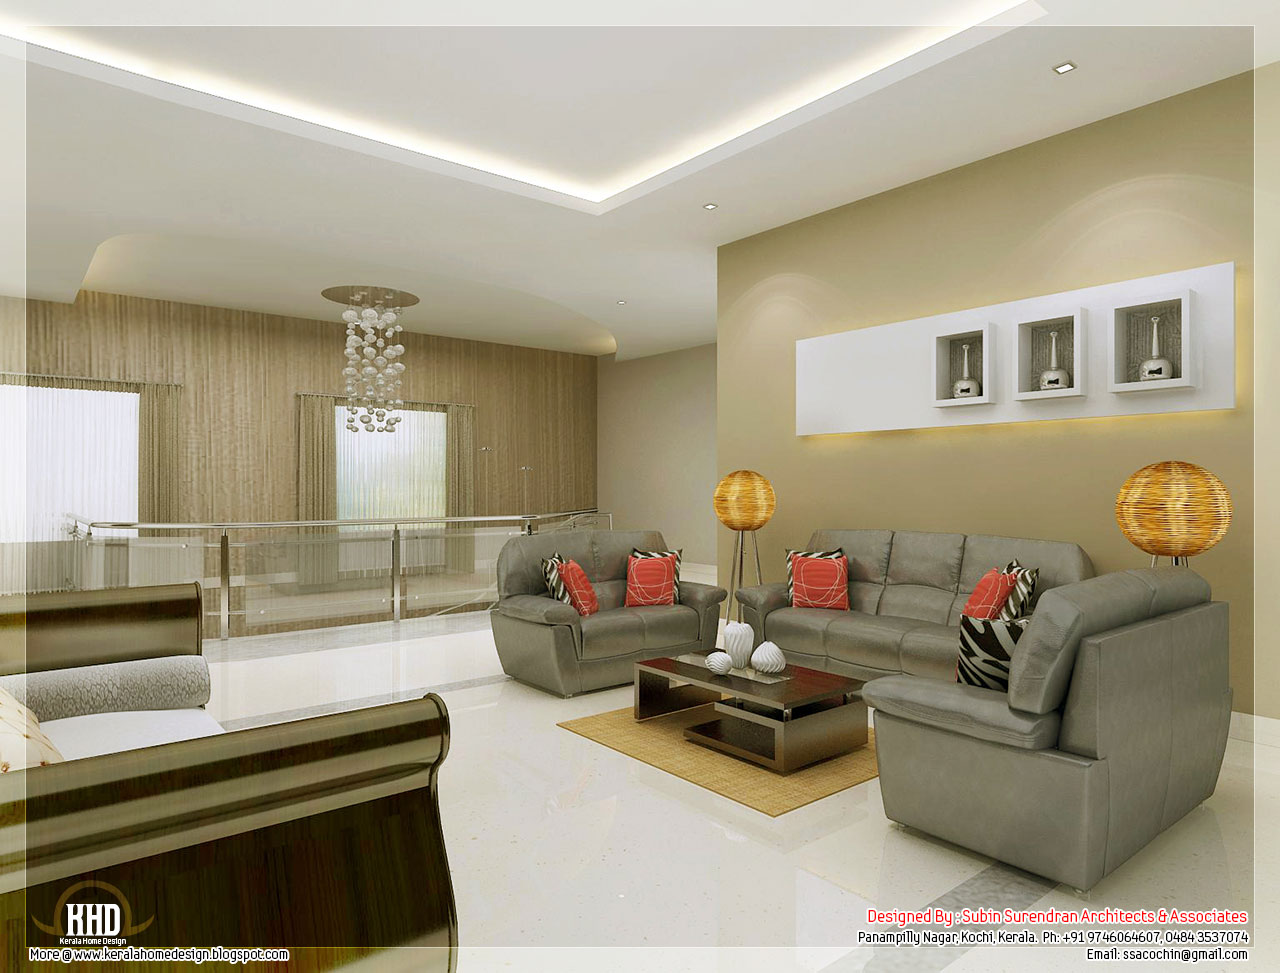 Awesome 3d Interior Renderings House Design Plans: interior decoration for living room